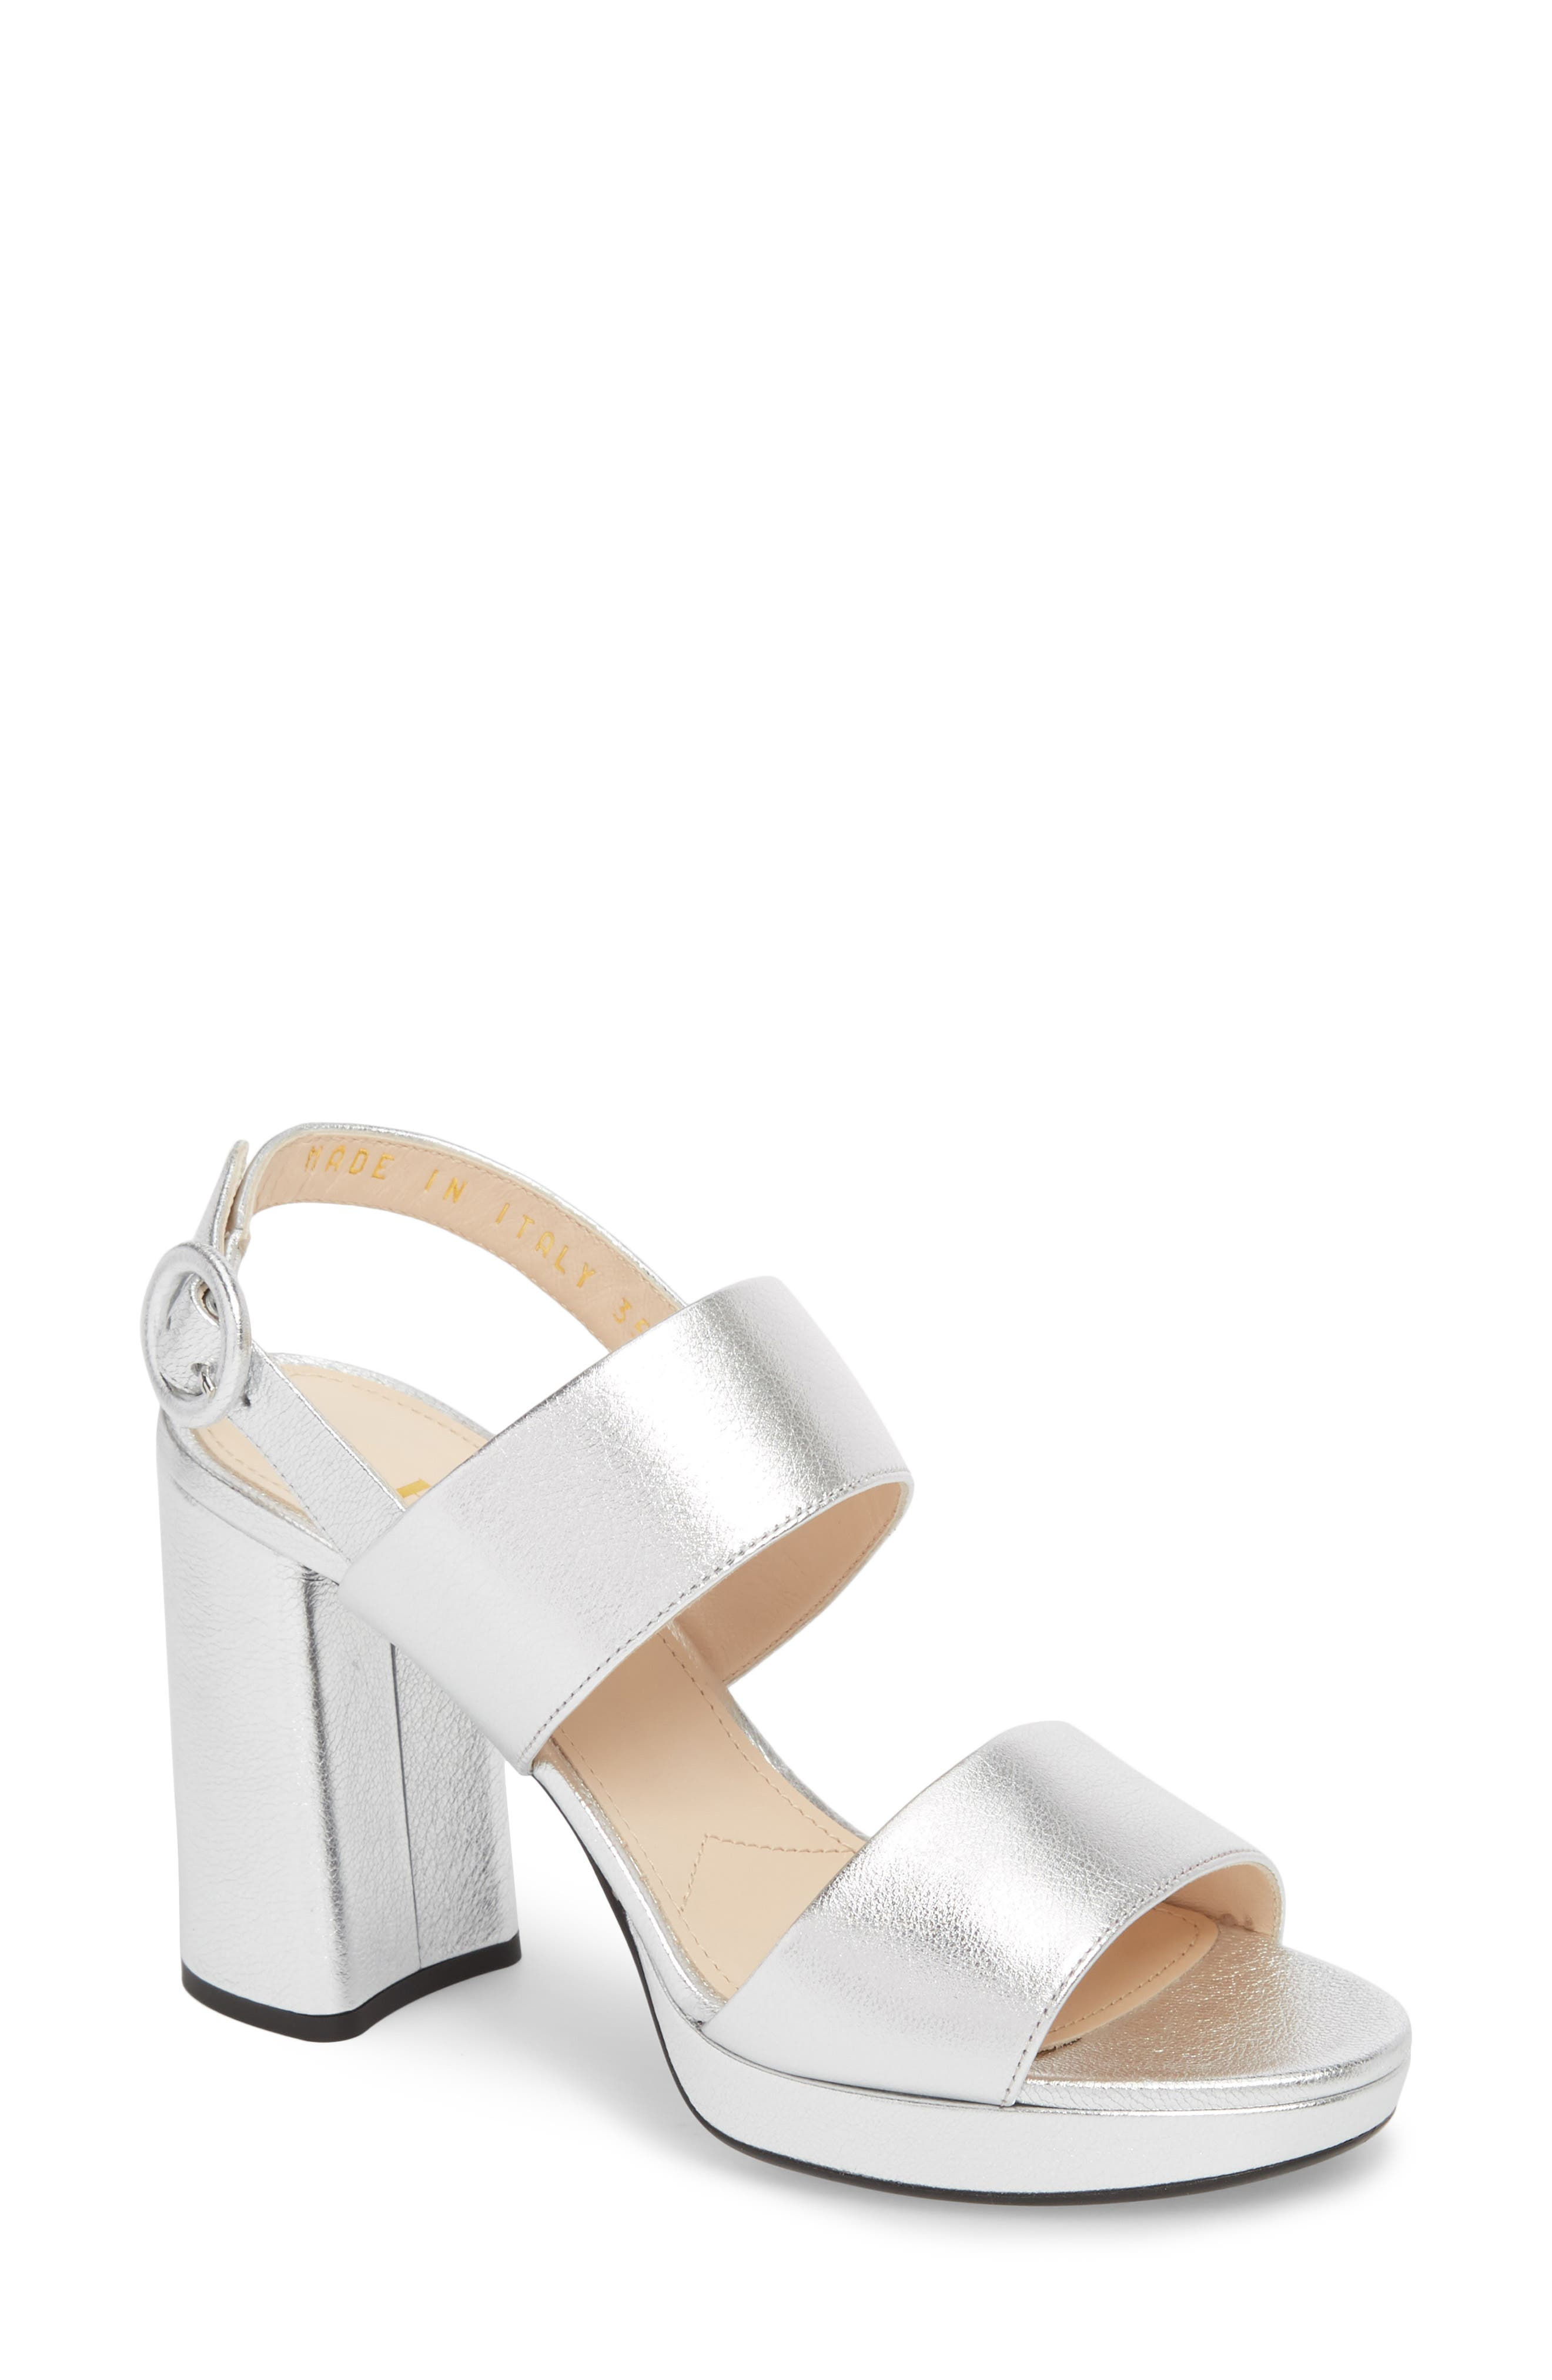 Double Band Platform Sandal,                             Main thumbnail 1, color,                             SILVER